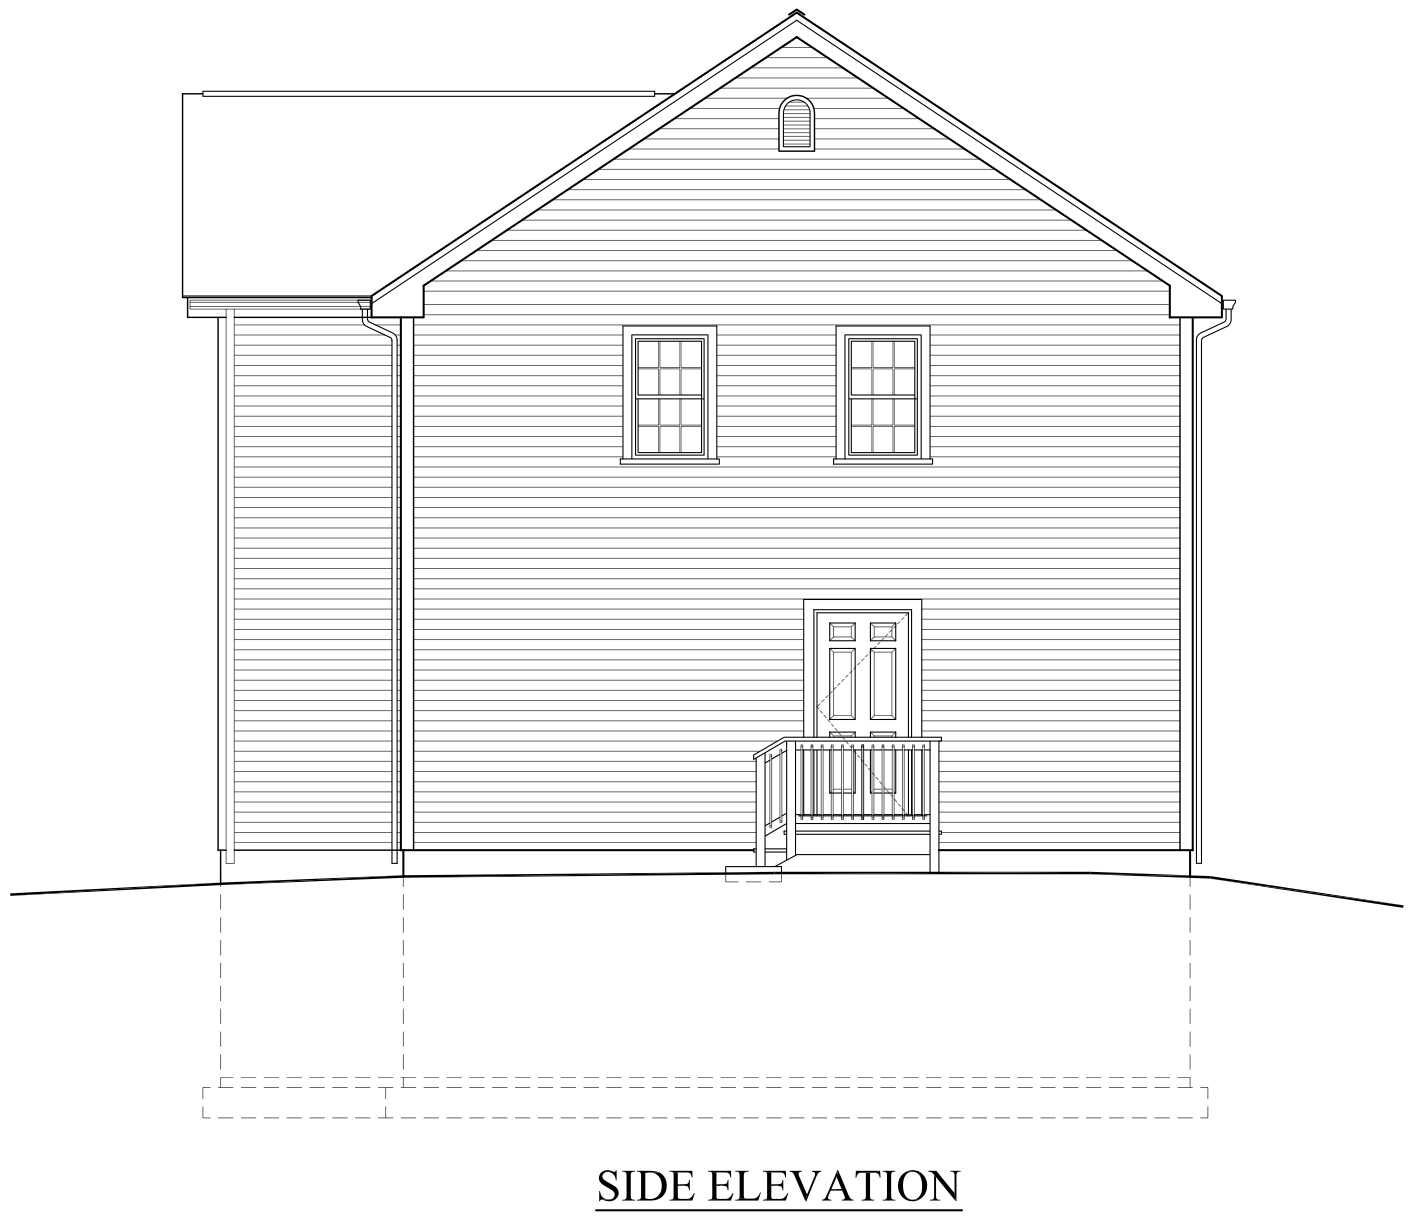 Home Front Elevation Drawings : Front view elevation of house plans